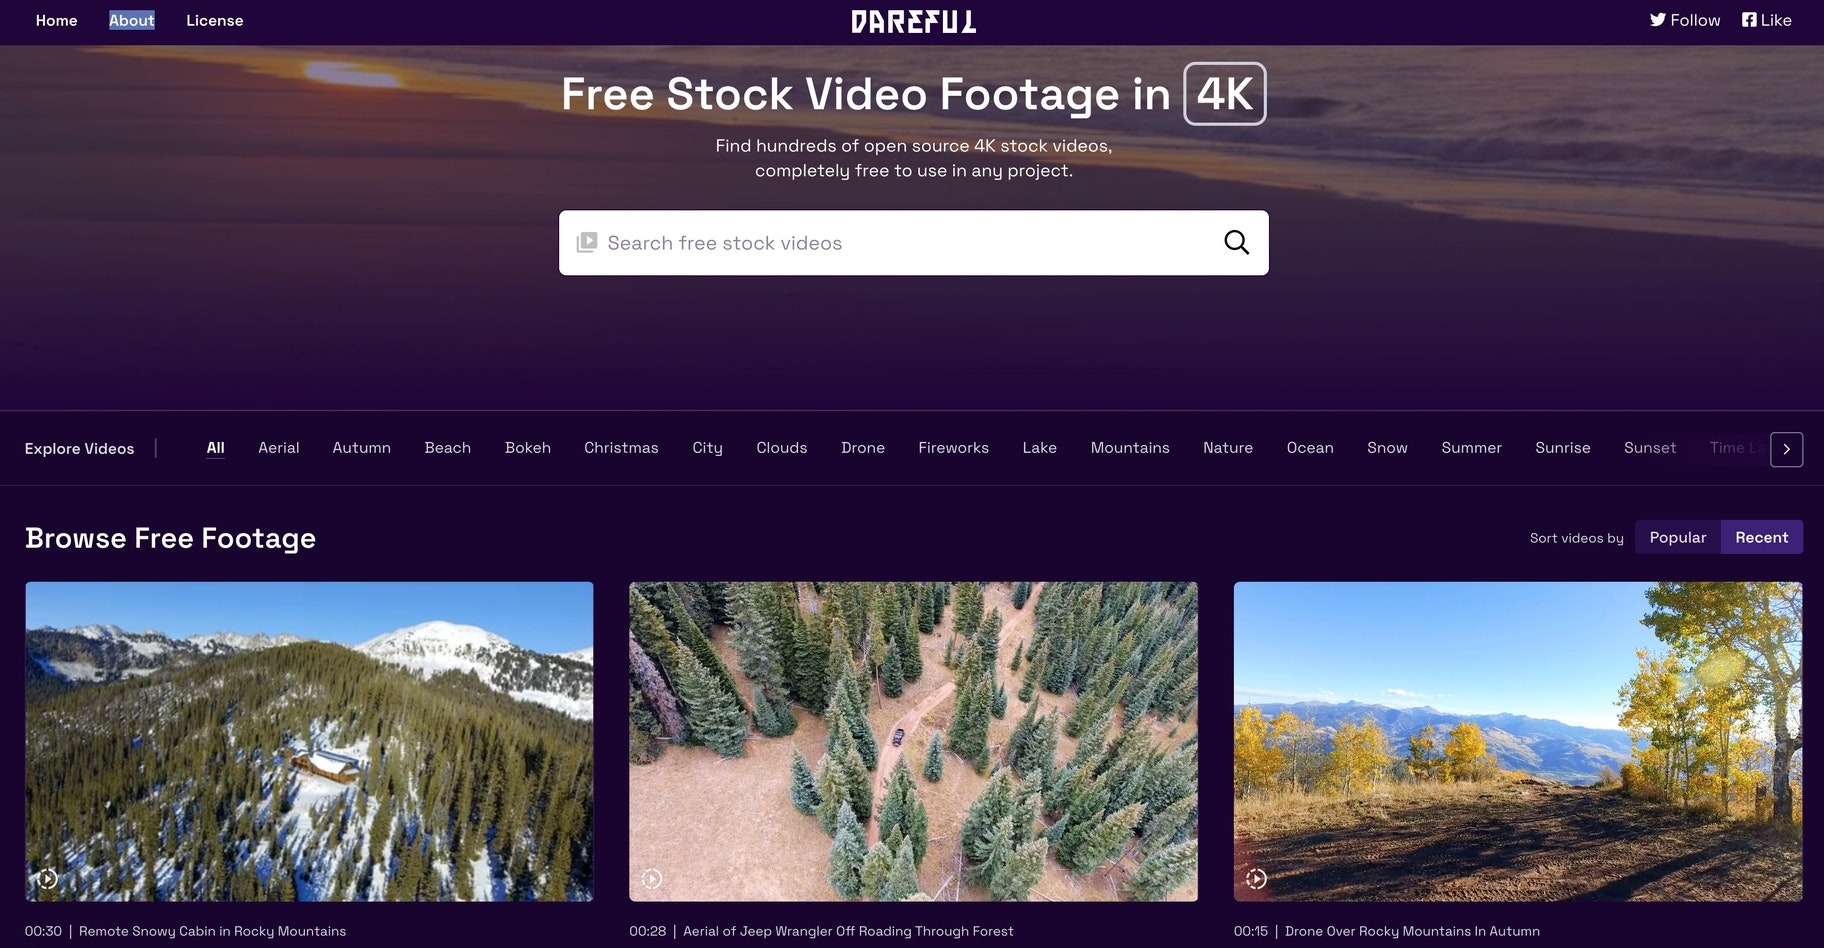 Dareful free 4k stock videos